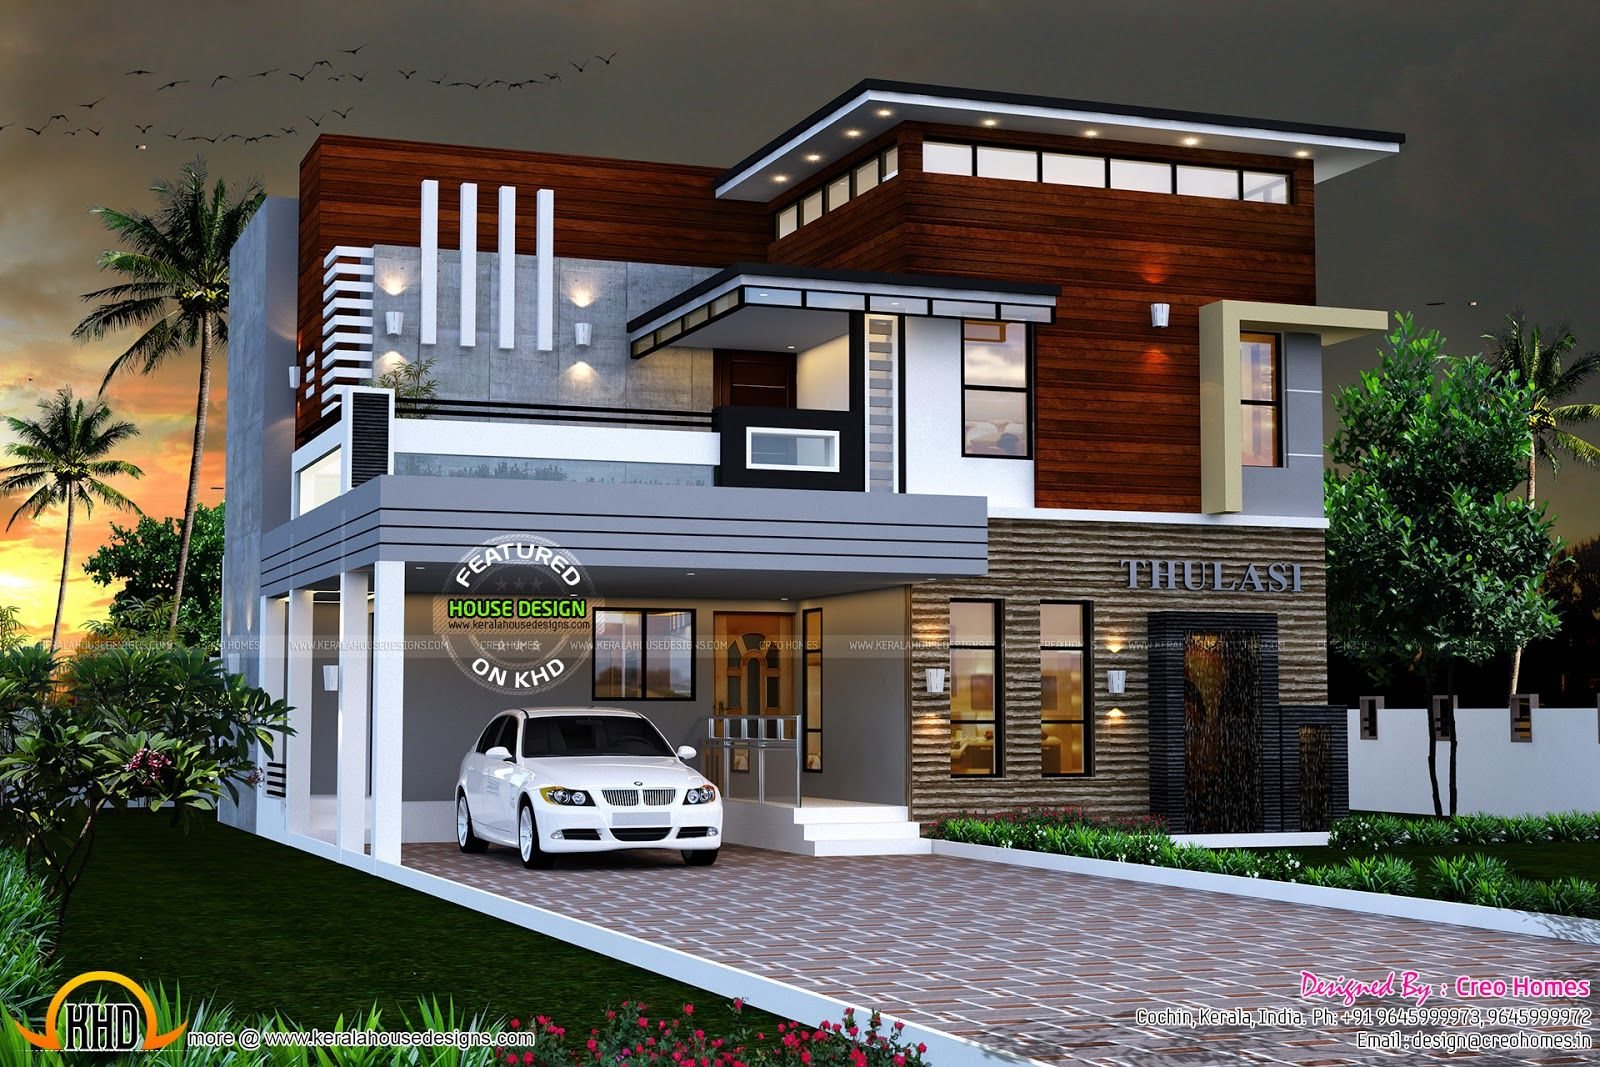 Eterior design modern small house architecture building Contemporary house builders